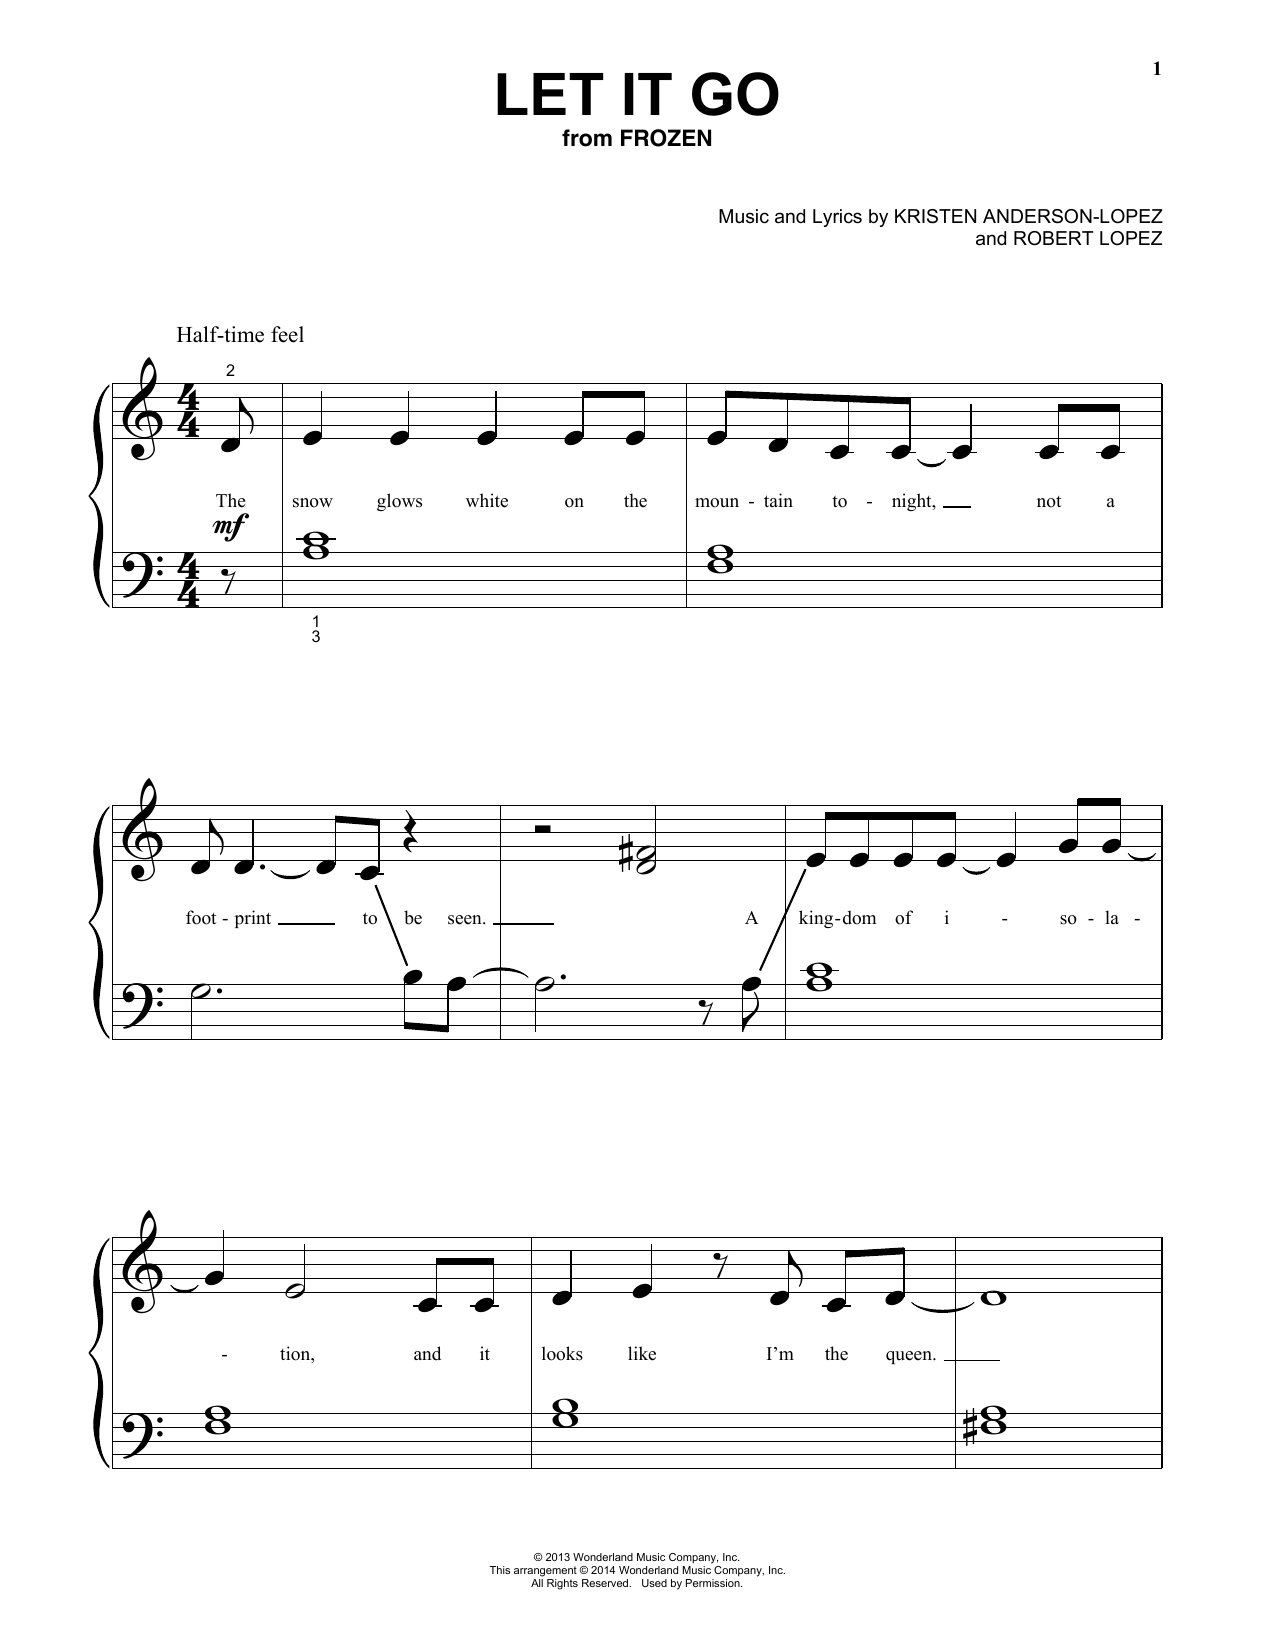 piano sheet free download pdf